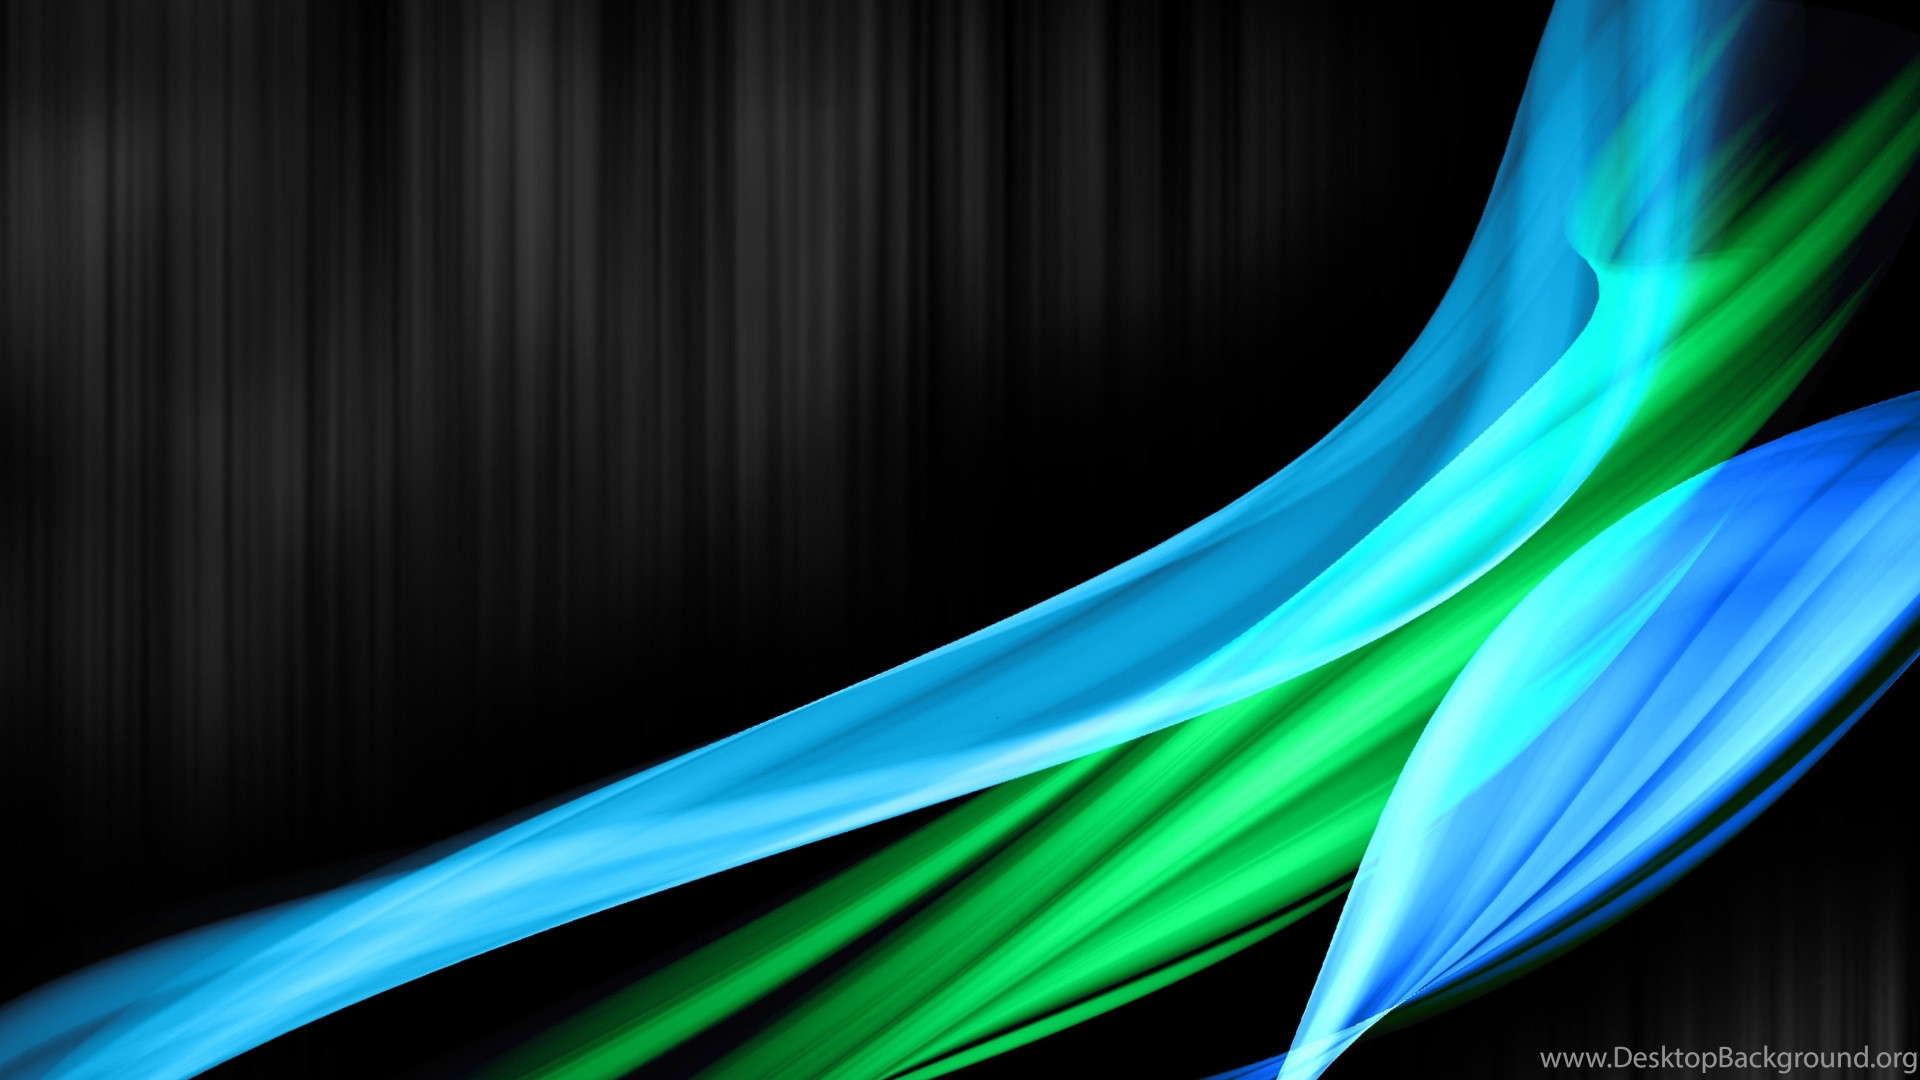 1920x1080 Windows Vista Business, Green, Microsoft Windows, Windows Vista Starter,  Windows 7 Wallpaper